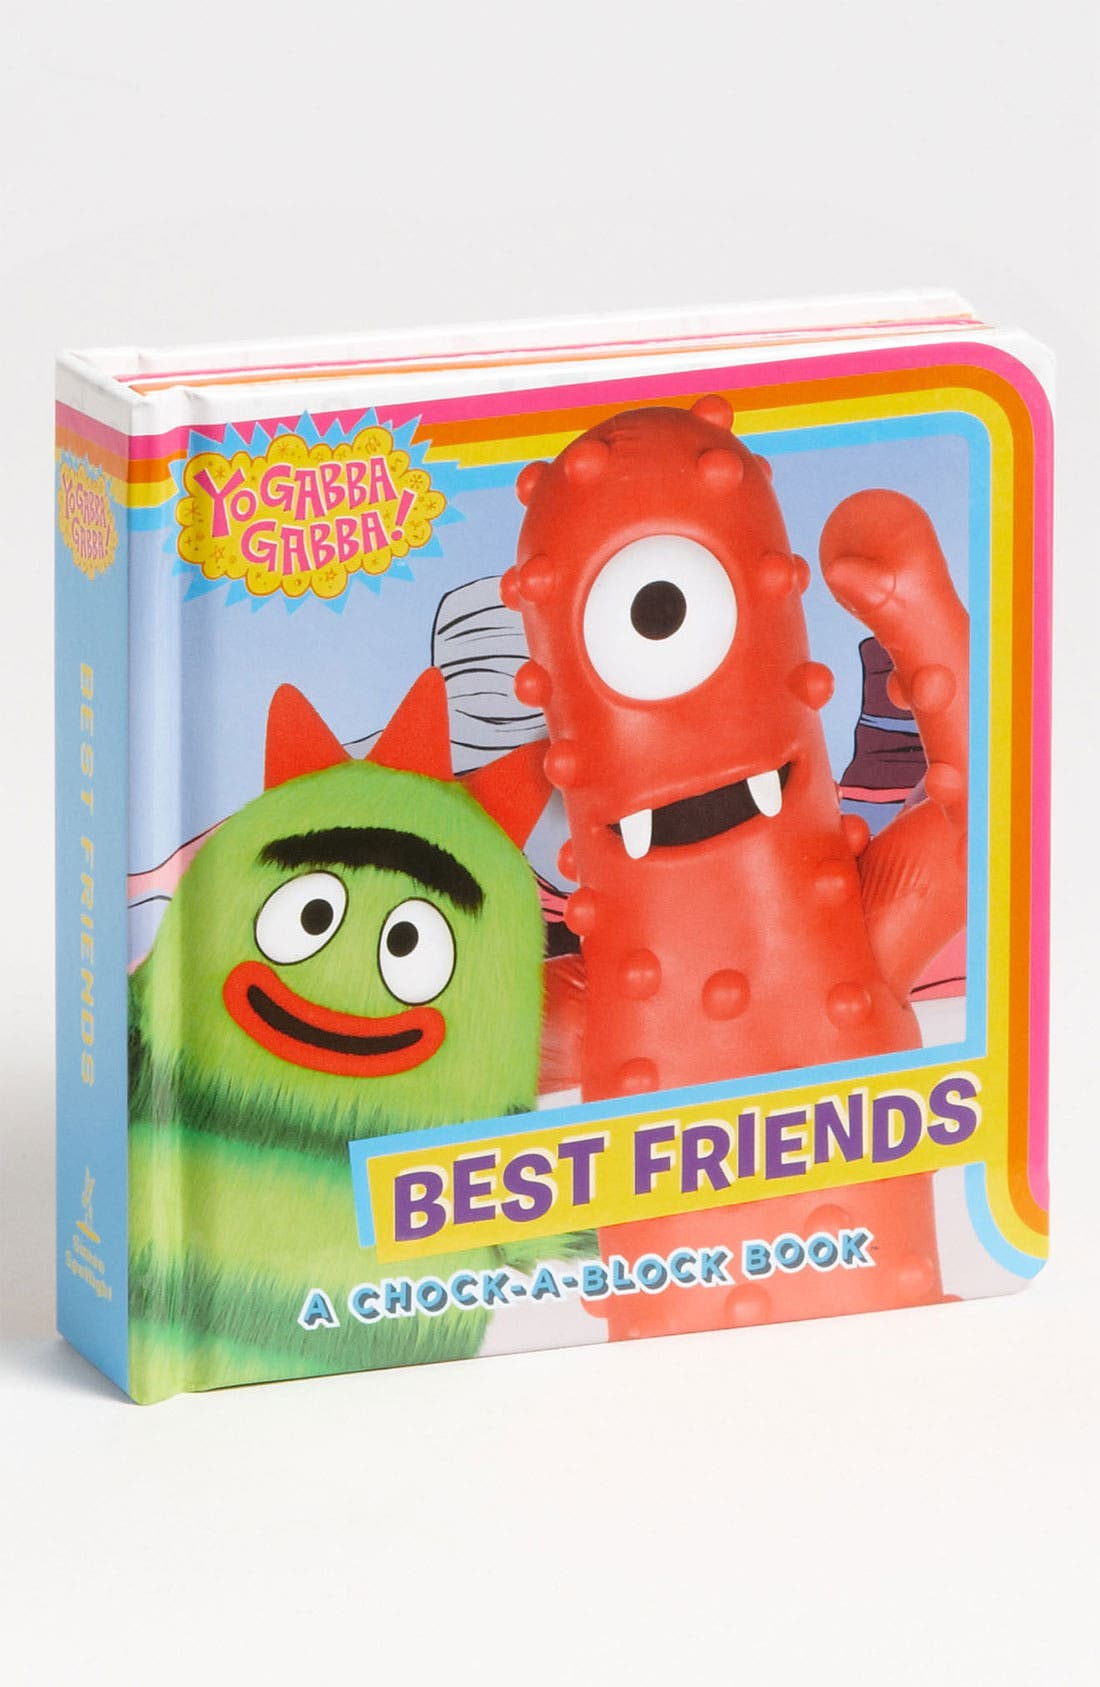 Alternate Image 1 Selected - Ellie Seiss 'Yo Gabba Gabba!™ - Best Friends' Book